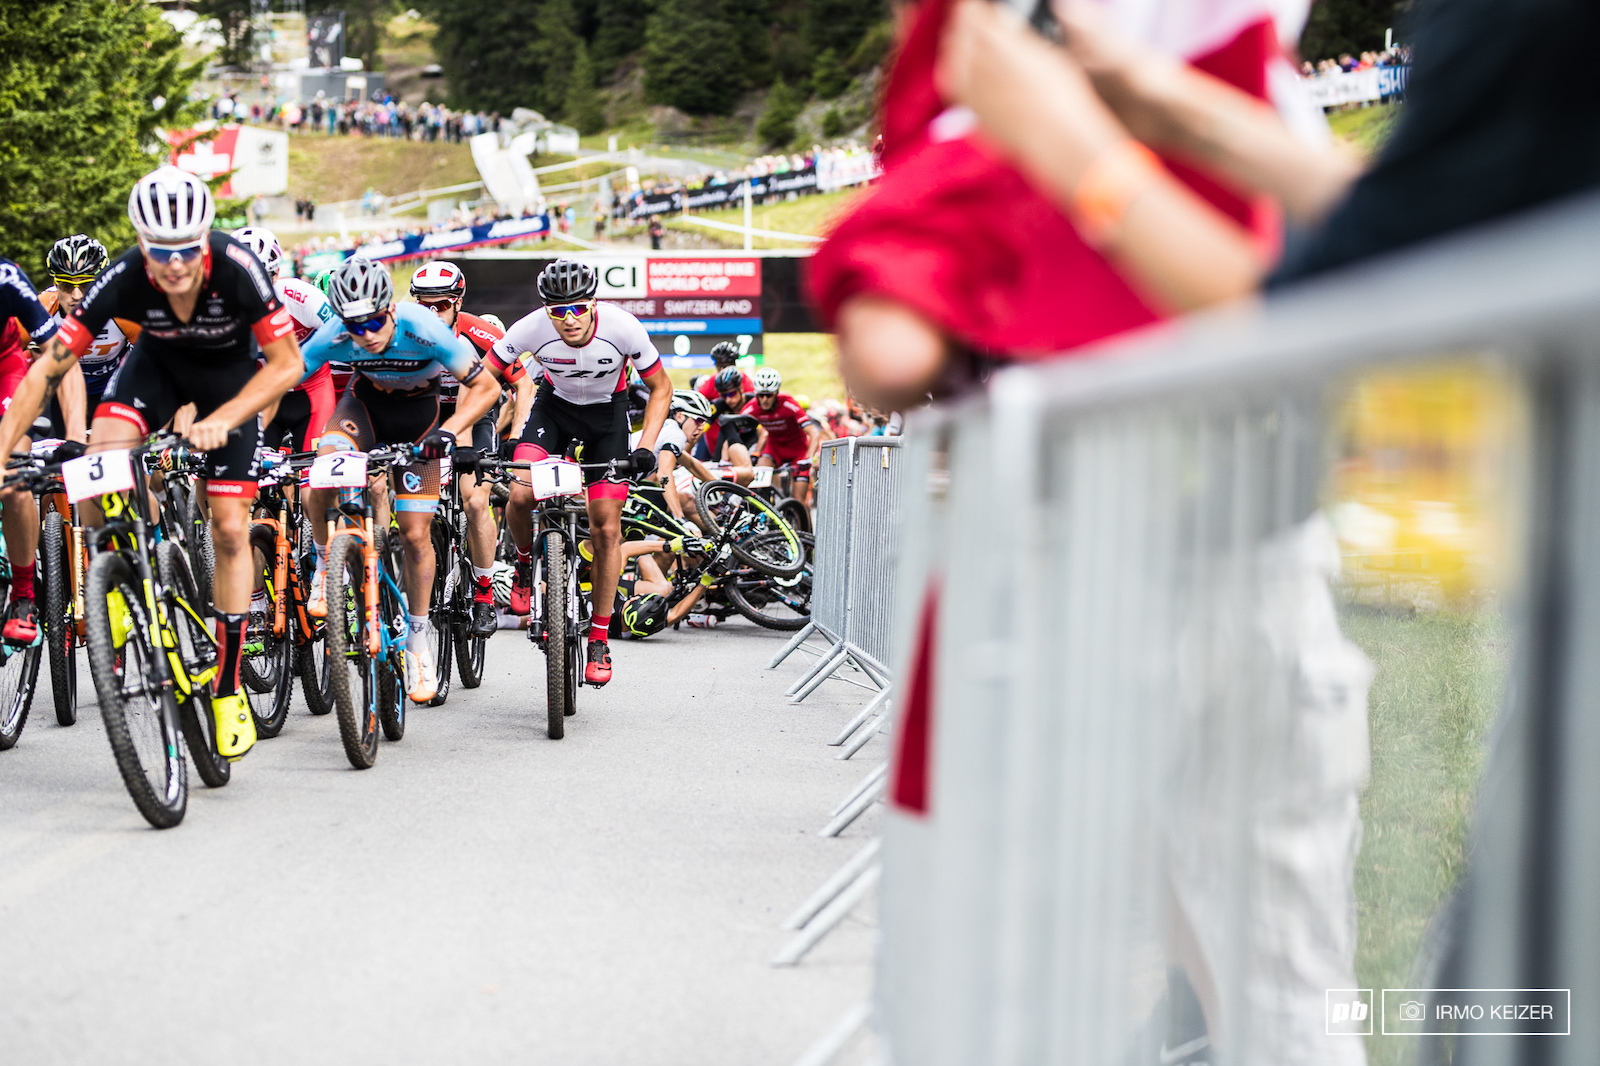 The men s U23 start saw a double crash piling riders up.